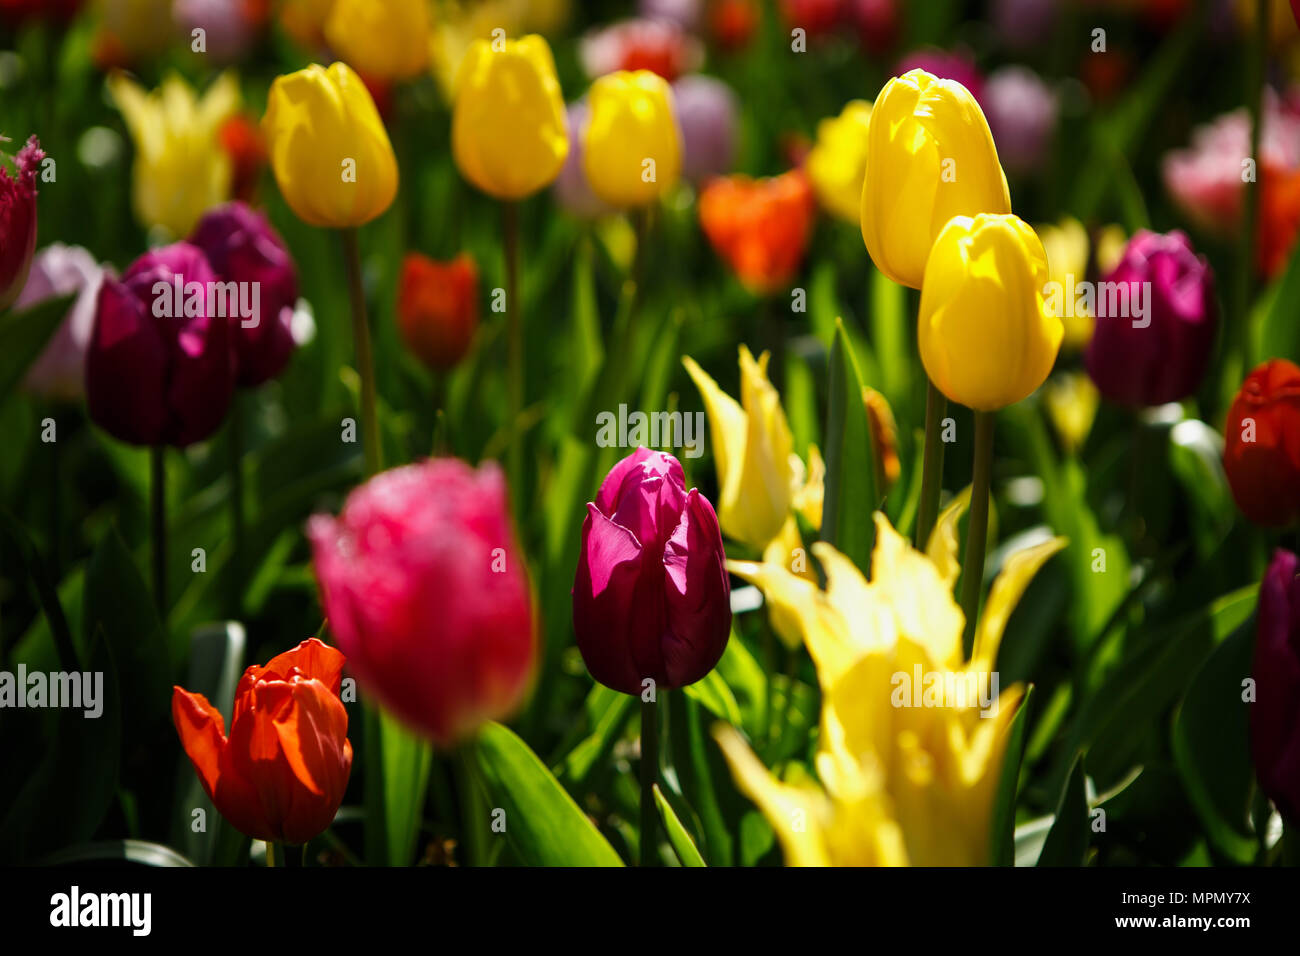 Beautiful colorful redpink yellow tulips flowers bloom in spring beautiful colorful redpink yellow tulips flowers bloom in spring gardencorative wallpaper with flower blossom in springtimeauty of nature pos mightylinksfo